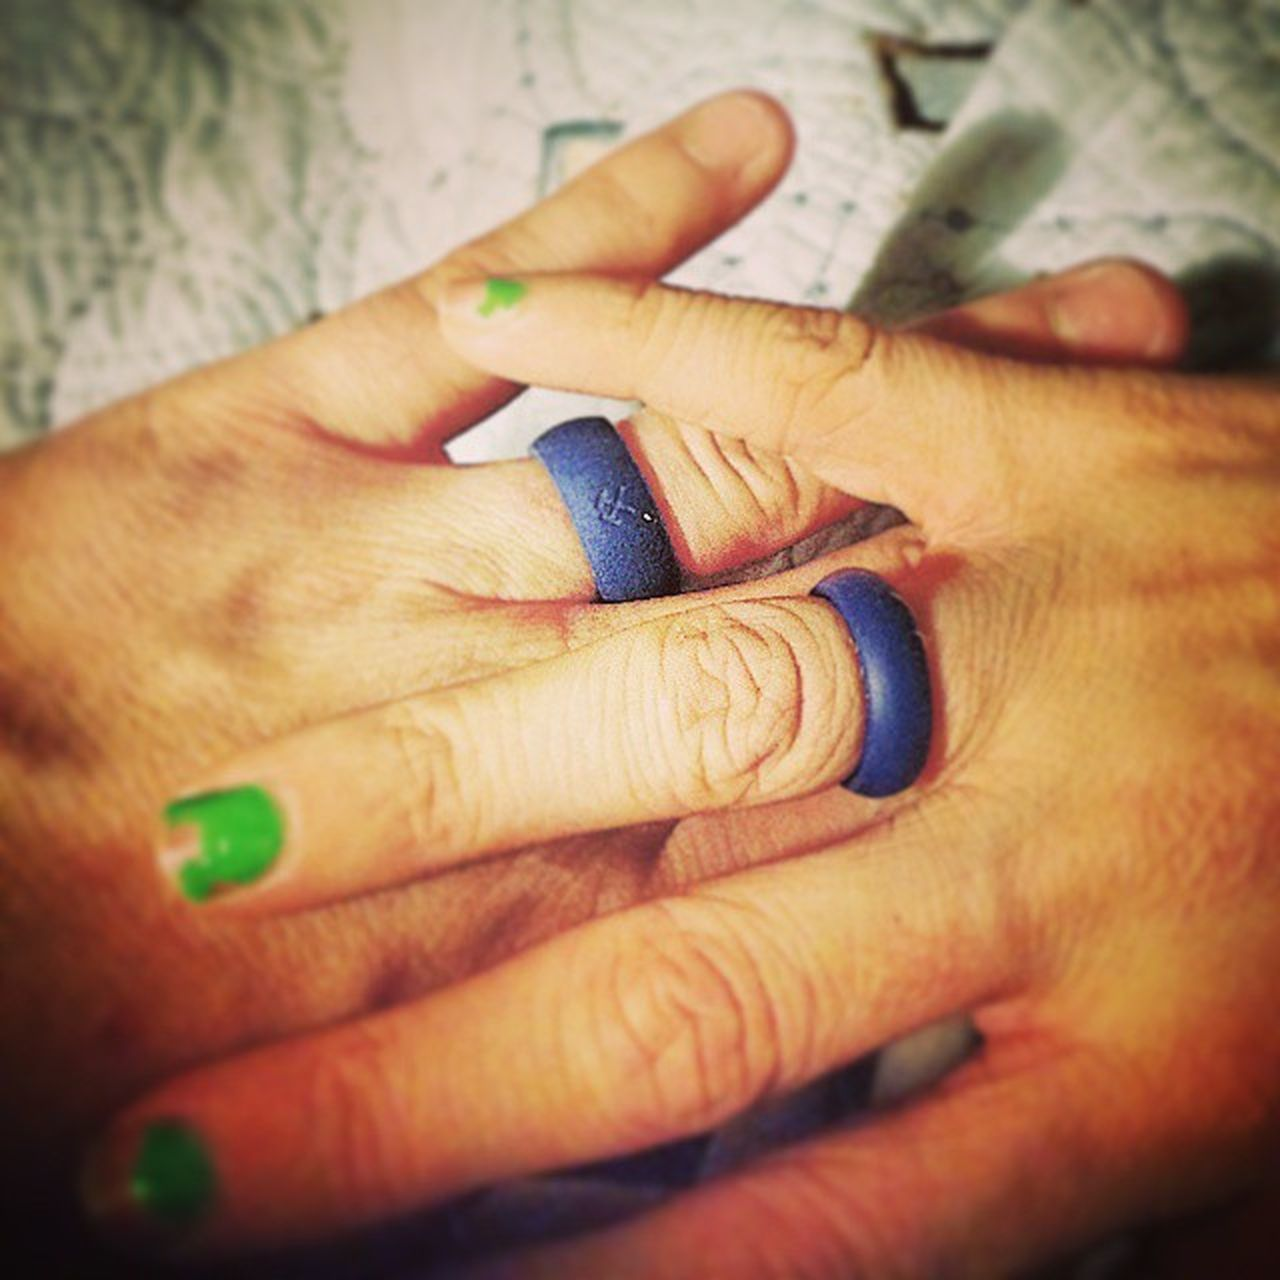 Matching rings! Qalo